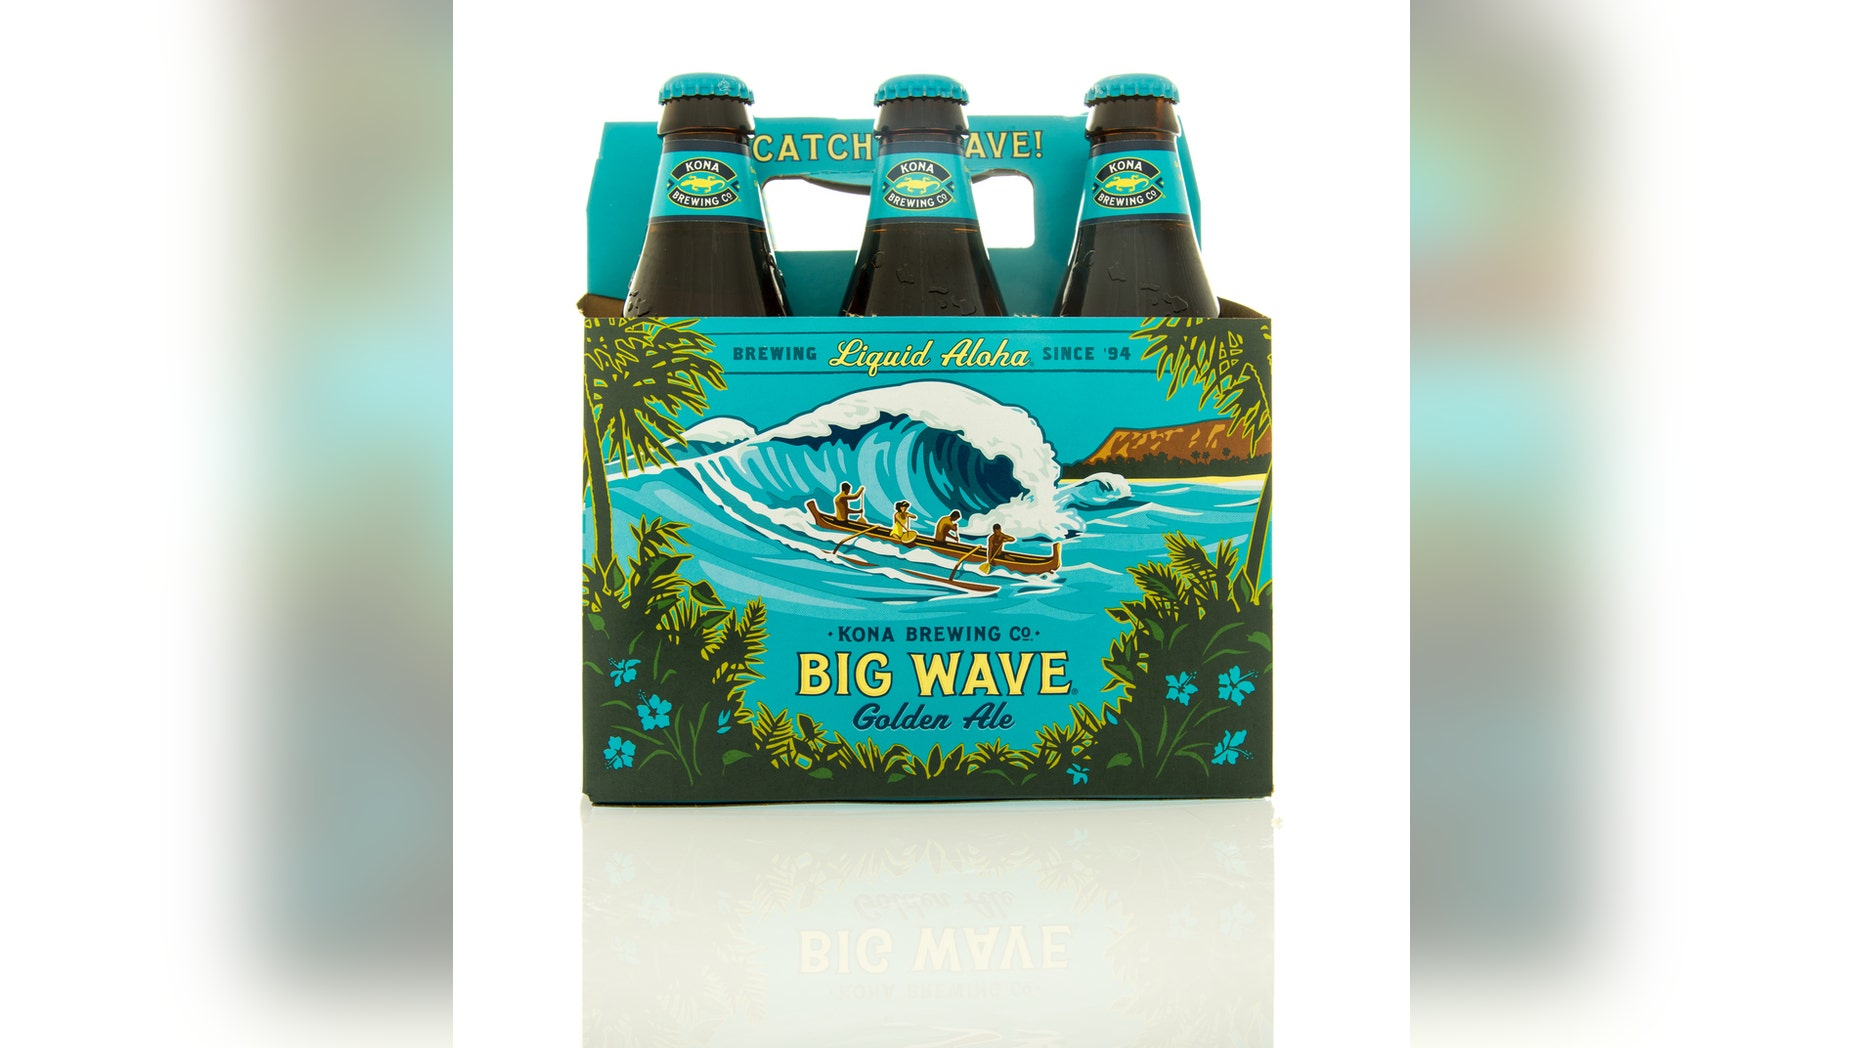 Winneconne, WI, USA - 9 March 2016: Six pack of Big Wave beer from the Kona brewing company